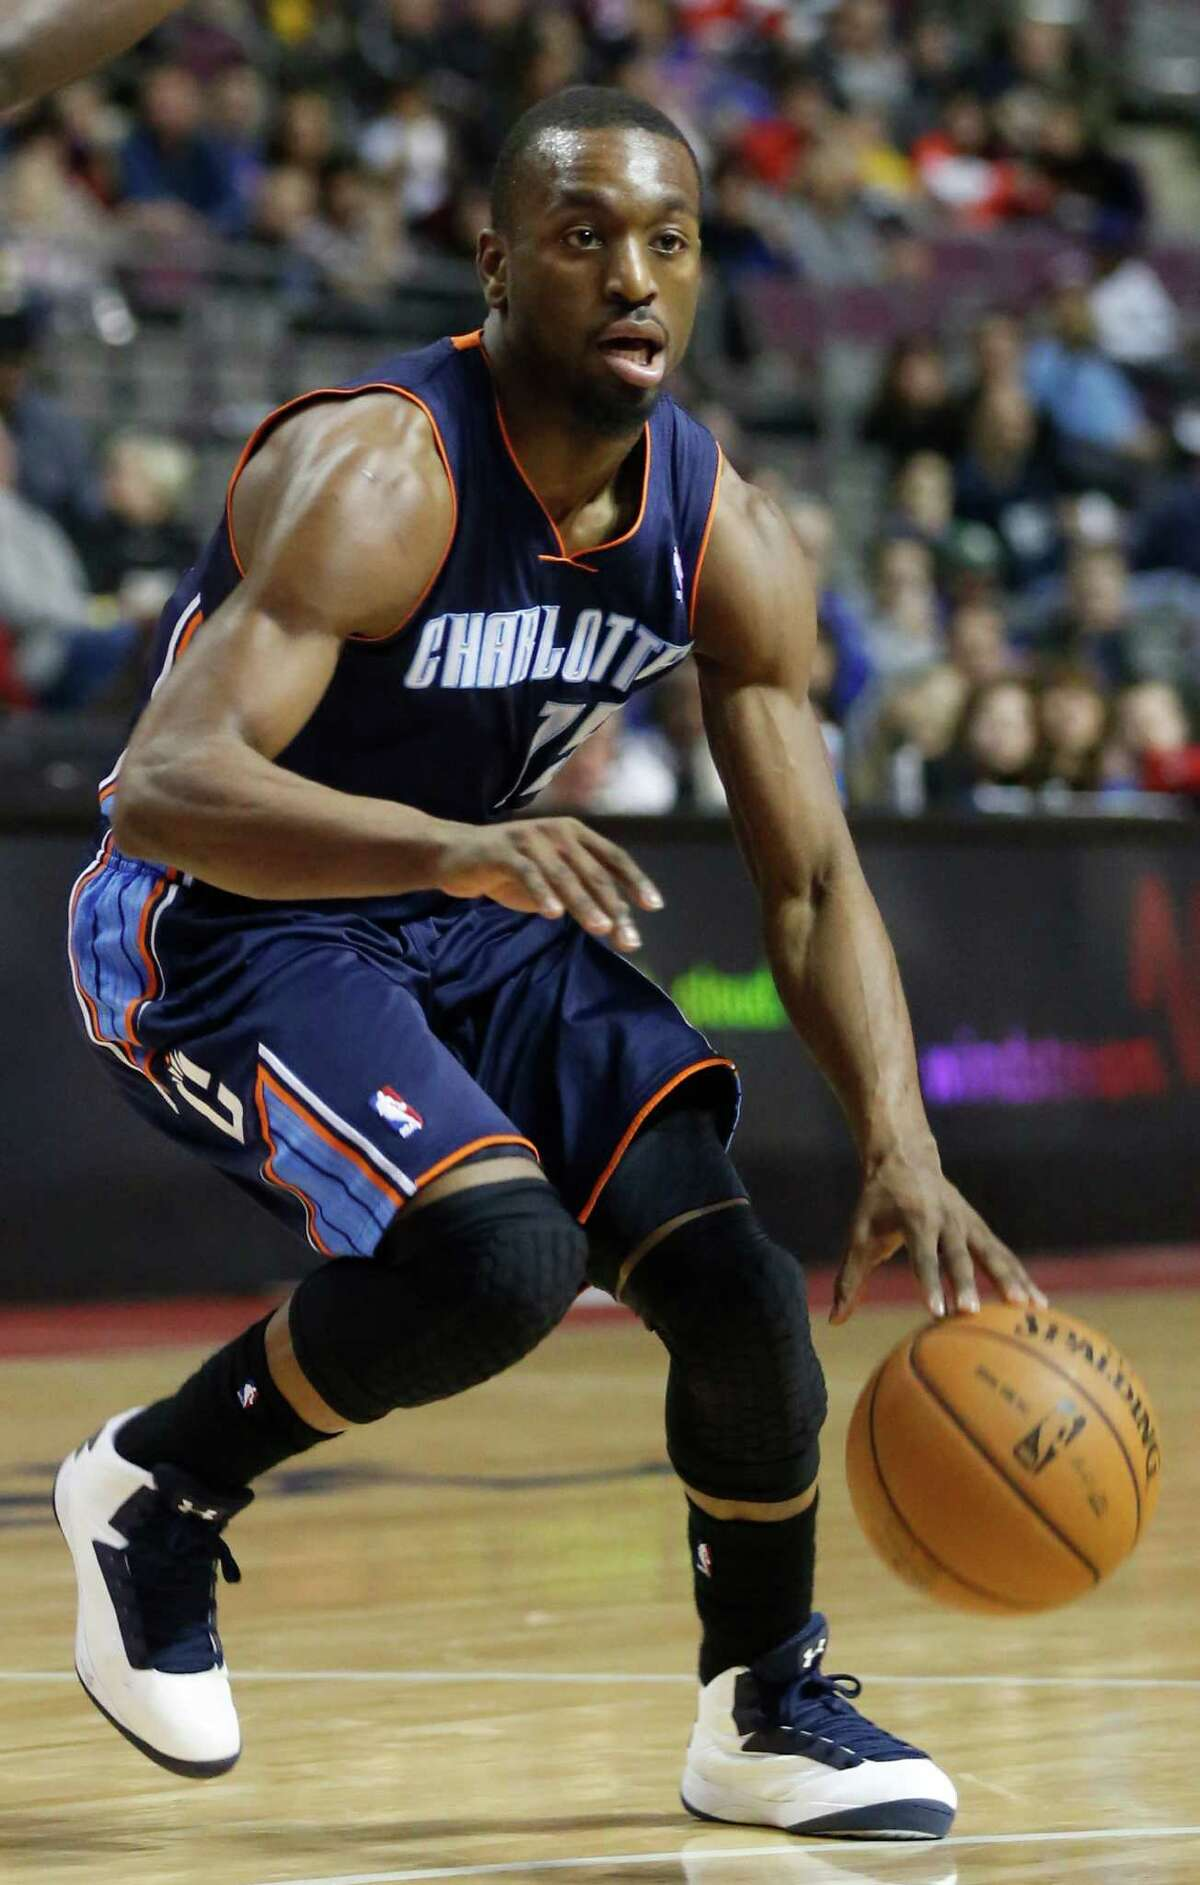 Charlotte Bobcats guard Kemba Walker (15) against the Detroit Pistons in the first half of an NBA basketball game Sunday, Jan. 6, 2013, in Auburn Hills, Mich. (AP Photo/Duane Burleson)